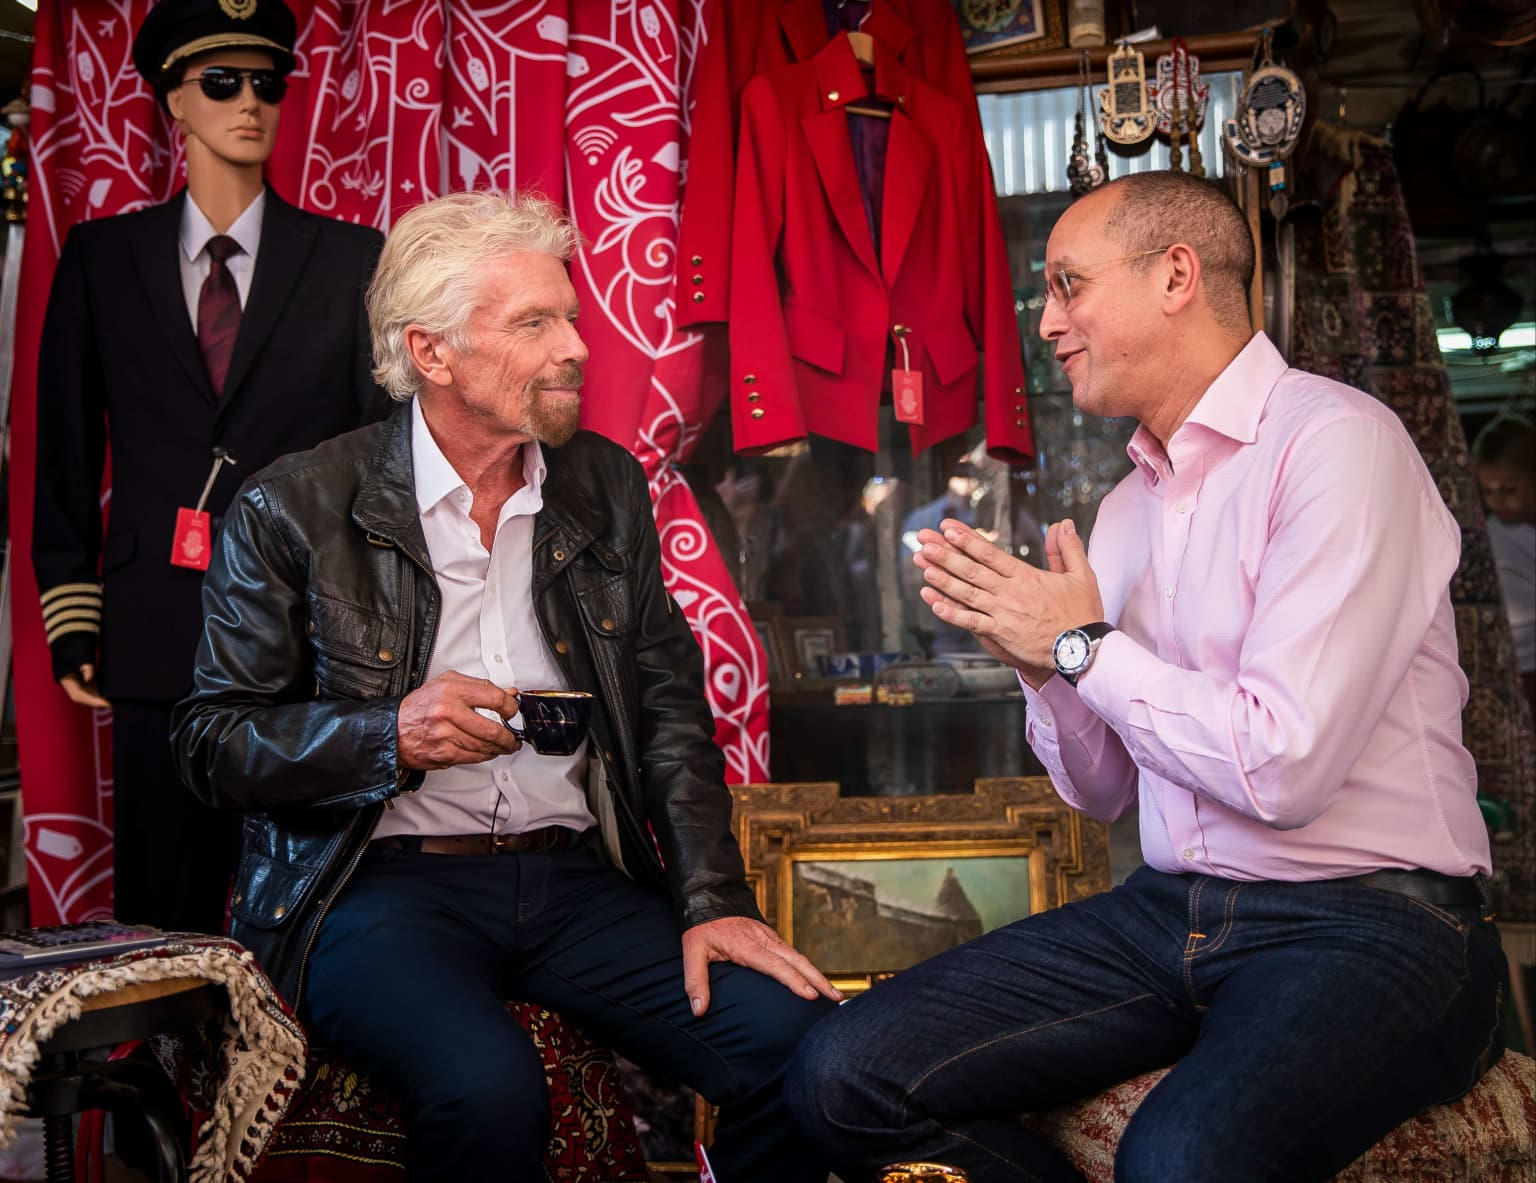 Virgin Atlantic - Turning an unknown outsider into the airline of choice